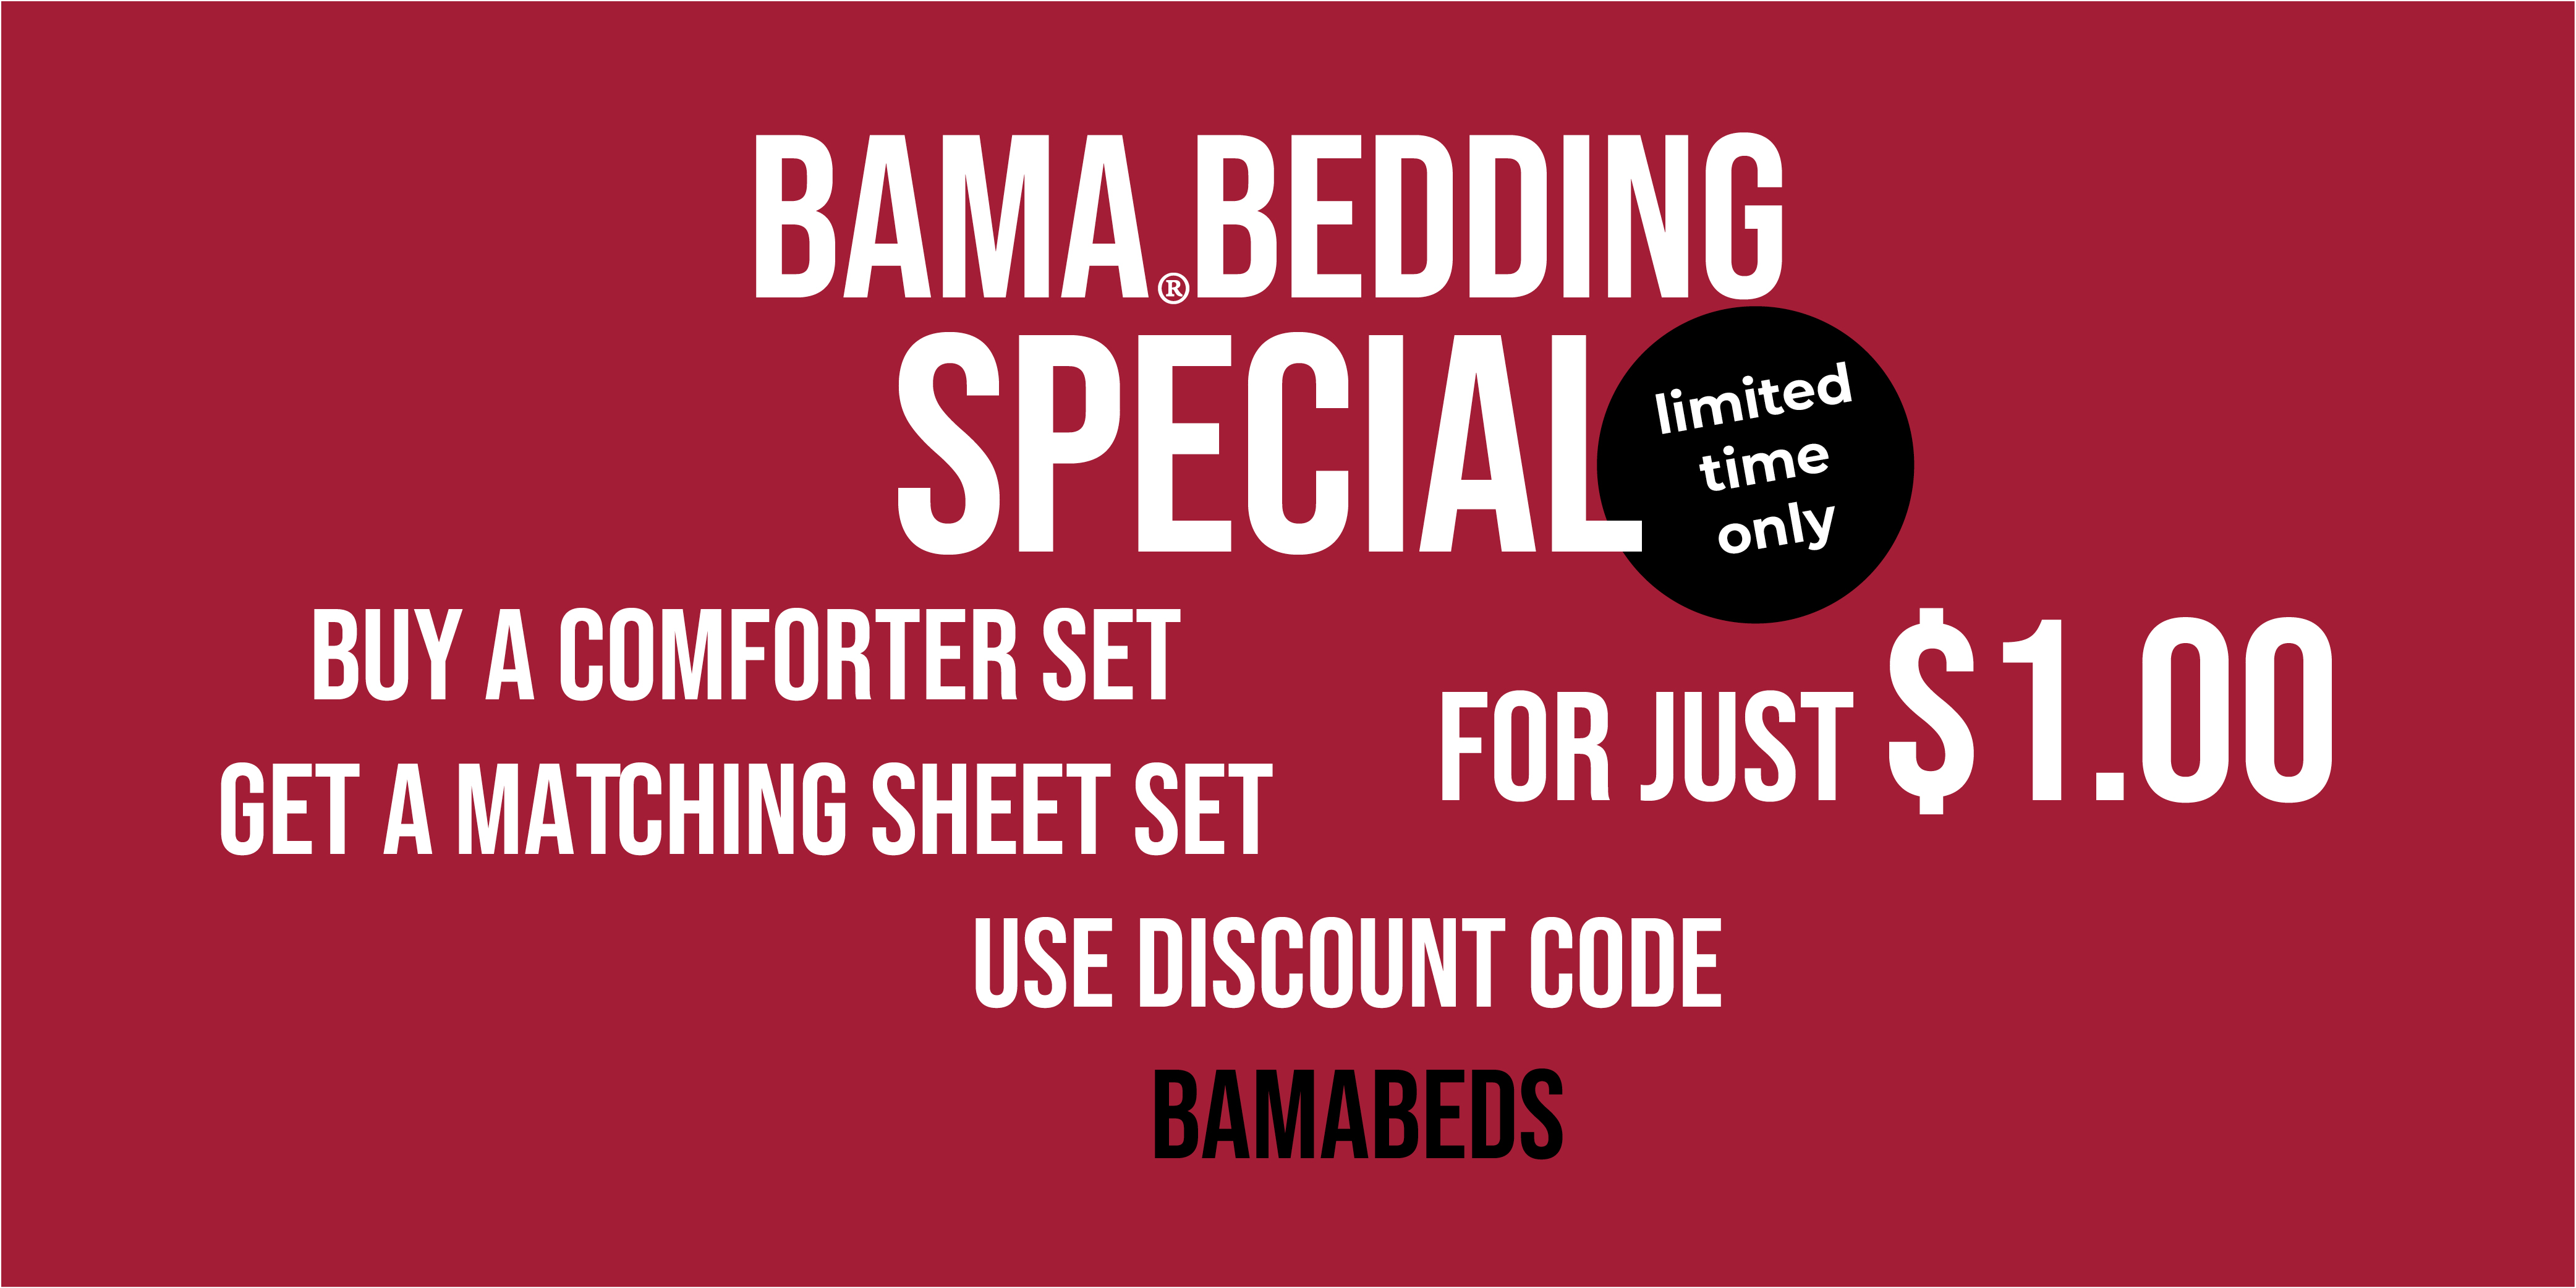 Buy a comforter and get the sheets for $1.00.